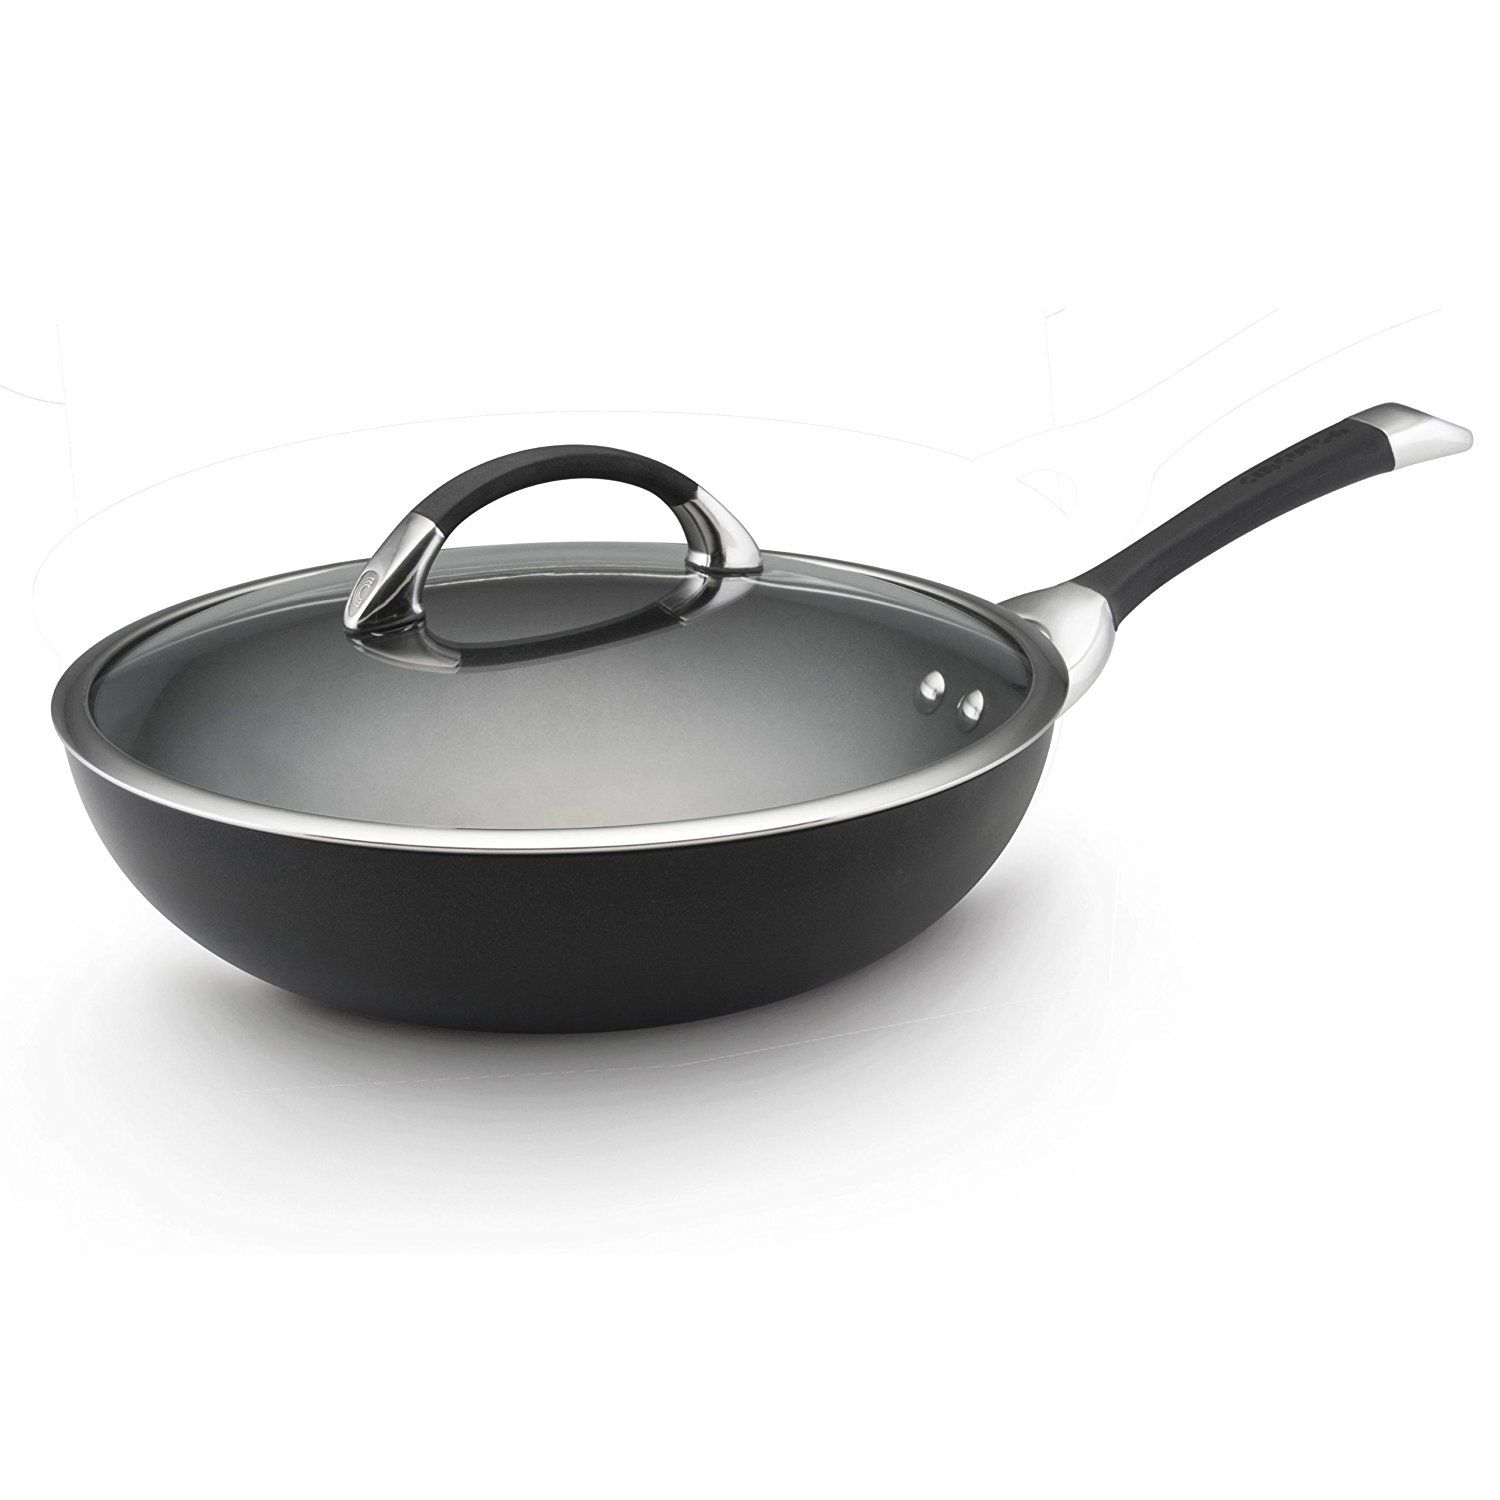 Cookware gt see more select by calphalon ceramic nonstick 8 inch an - Circulon Symmetry Hard Anodized Nonstick 12 Inch Covered Essentials Pan Find Out